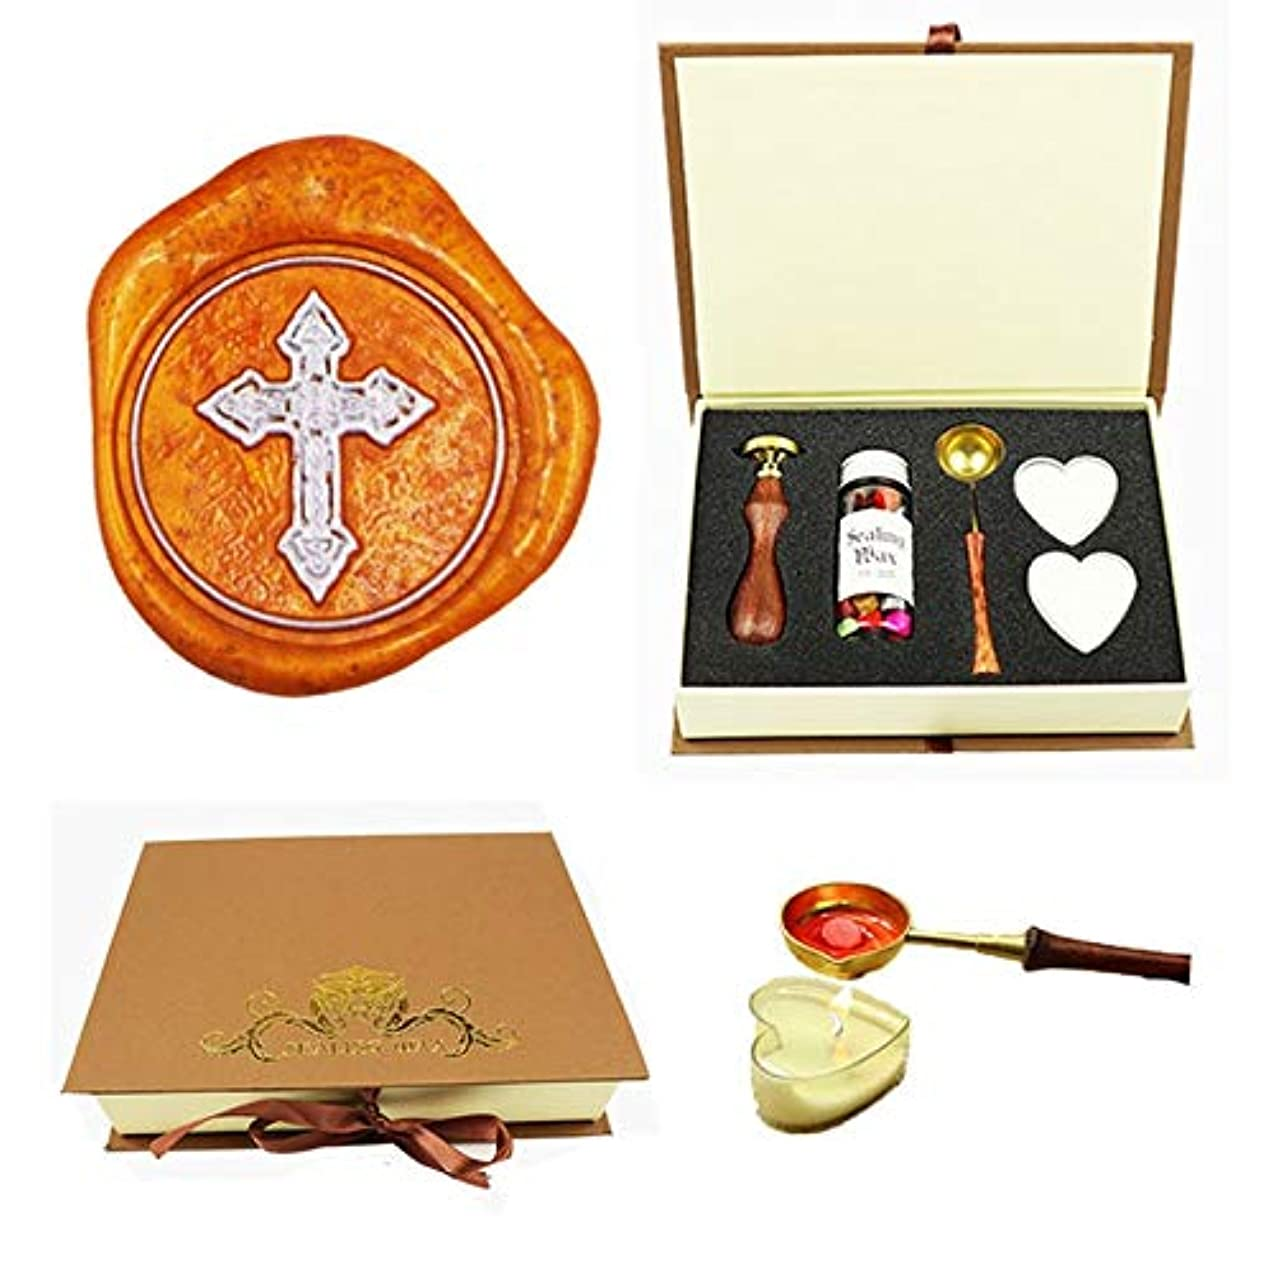 Jesus Cross Wax Seal Stamp Kit, YGHM Gift Book Box Rosewood Handle Wax Beads Melting Spoon Set, Wedding Invitations Letters Vintage Seal Stamp